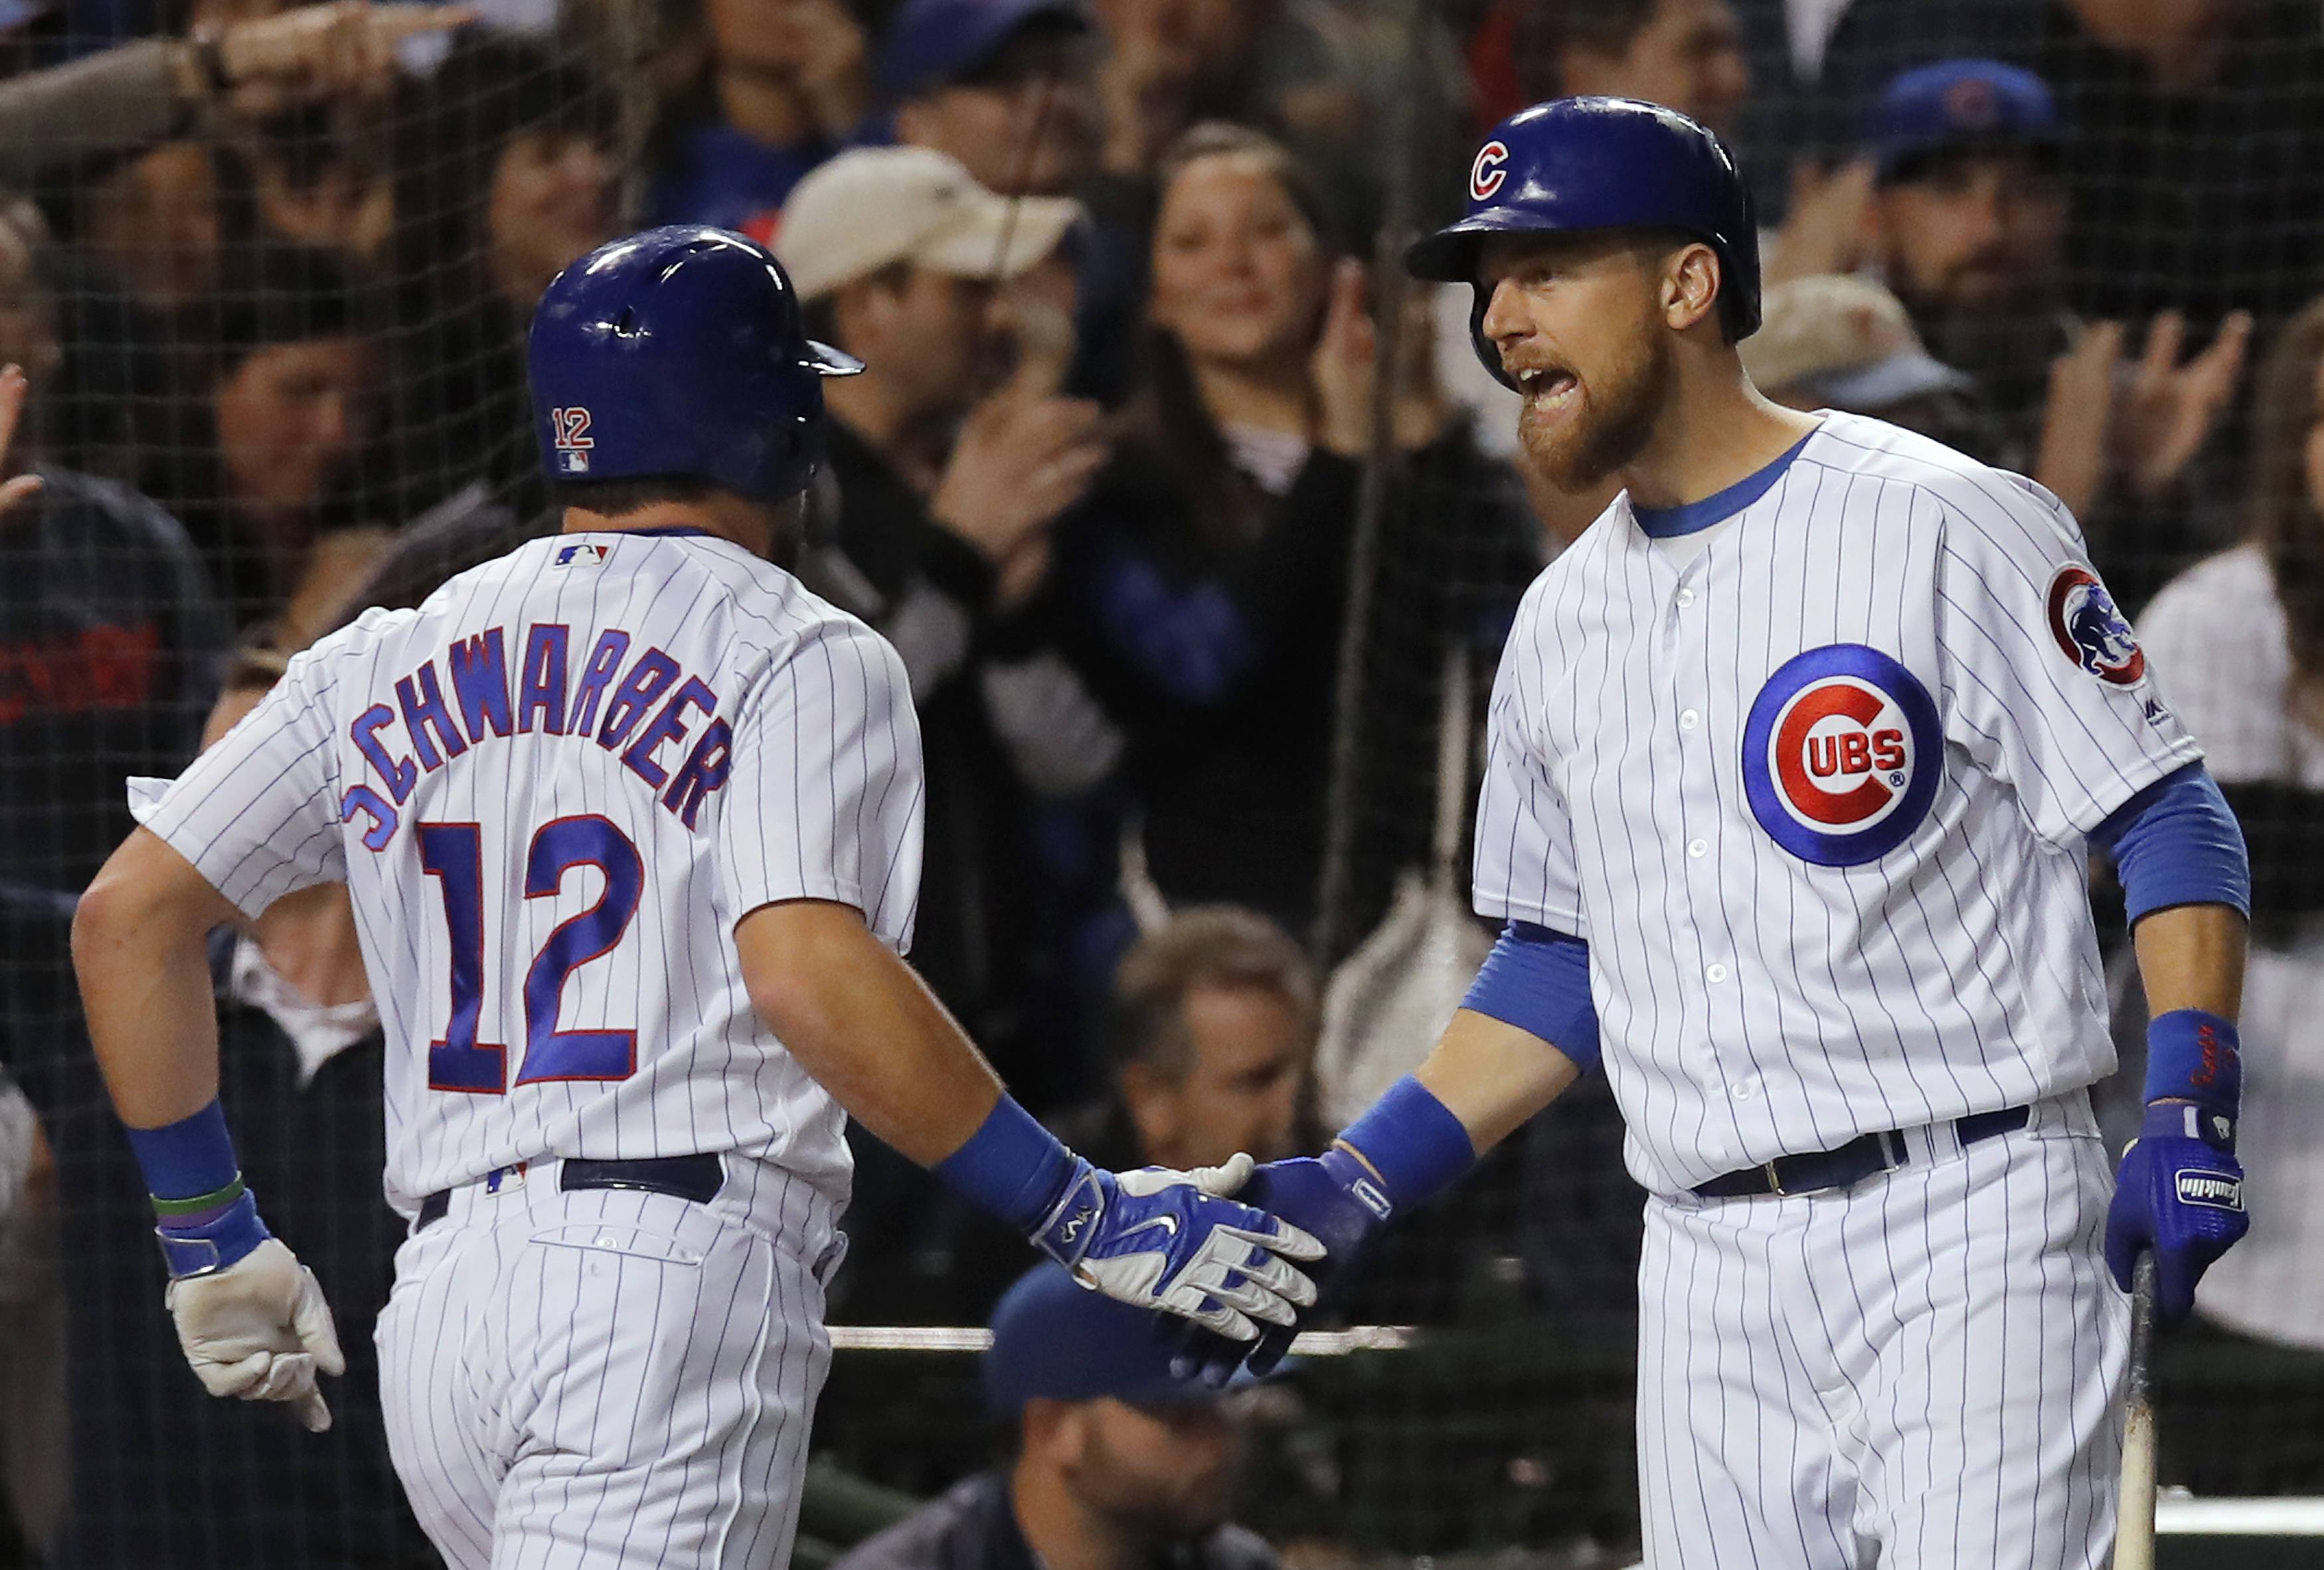 The Chicago Cubs' Ben Zobrist, at right celebrating with Kyle Schwarber late last season, reported to the team's spring-training camp Friday ready to help with some veteran leadership.